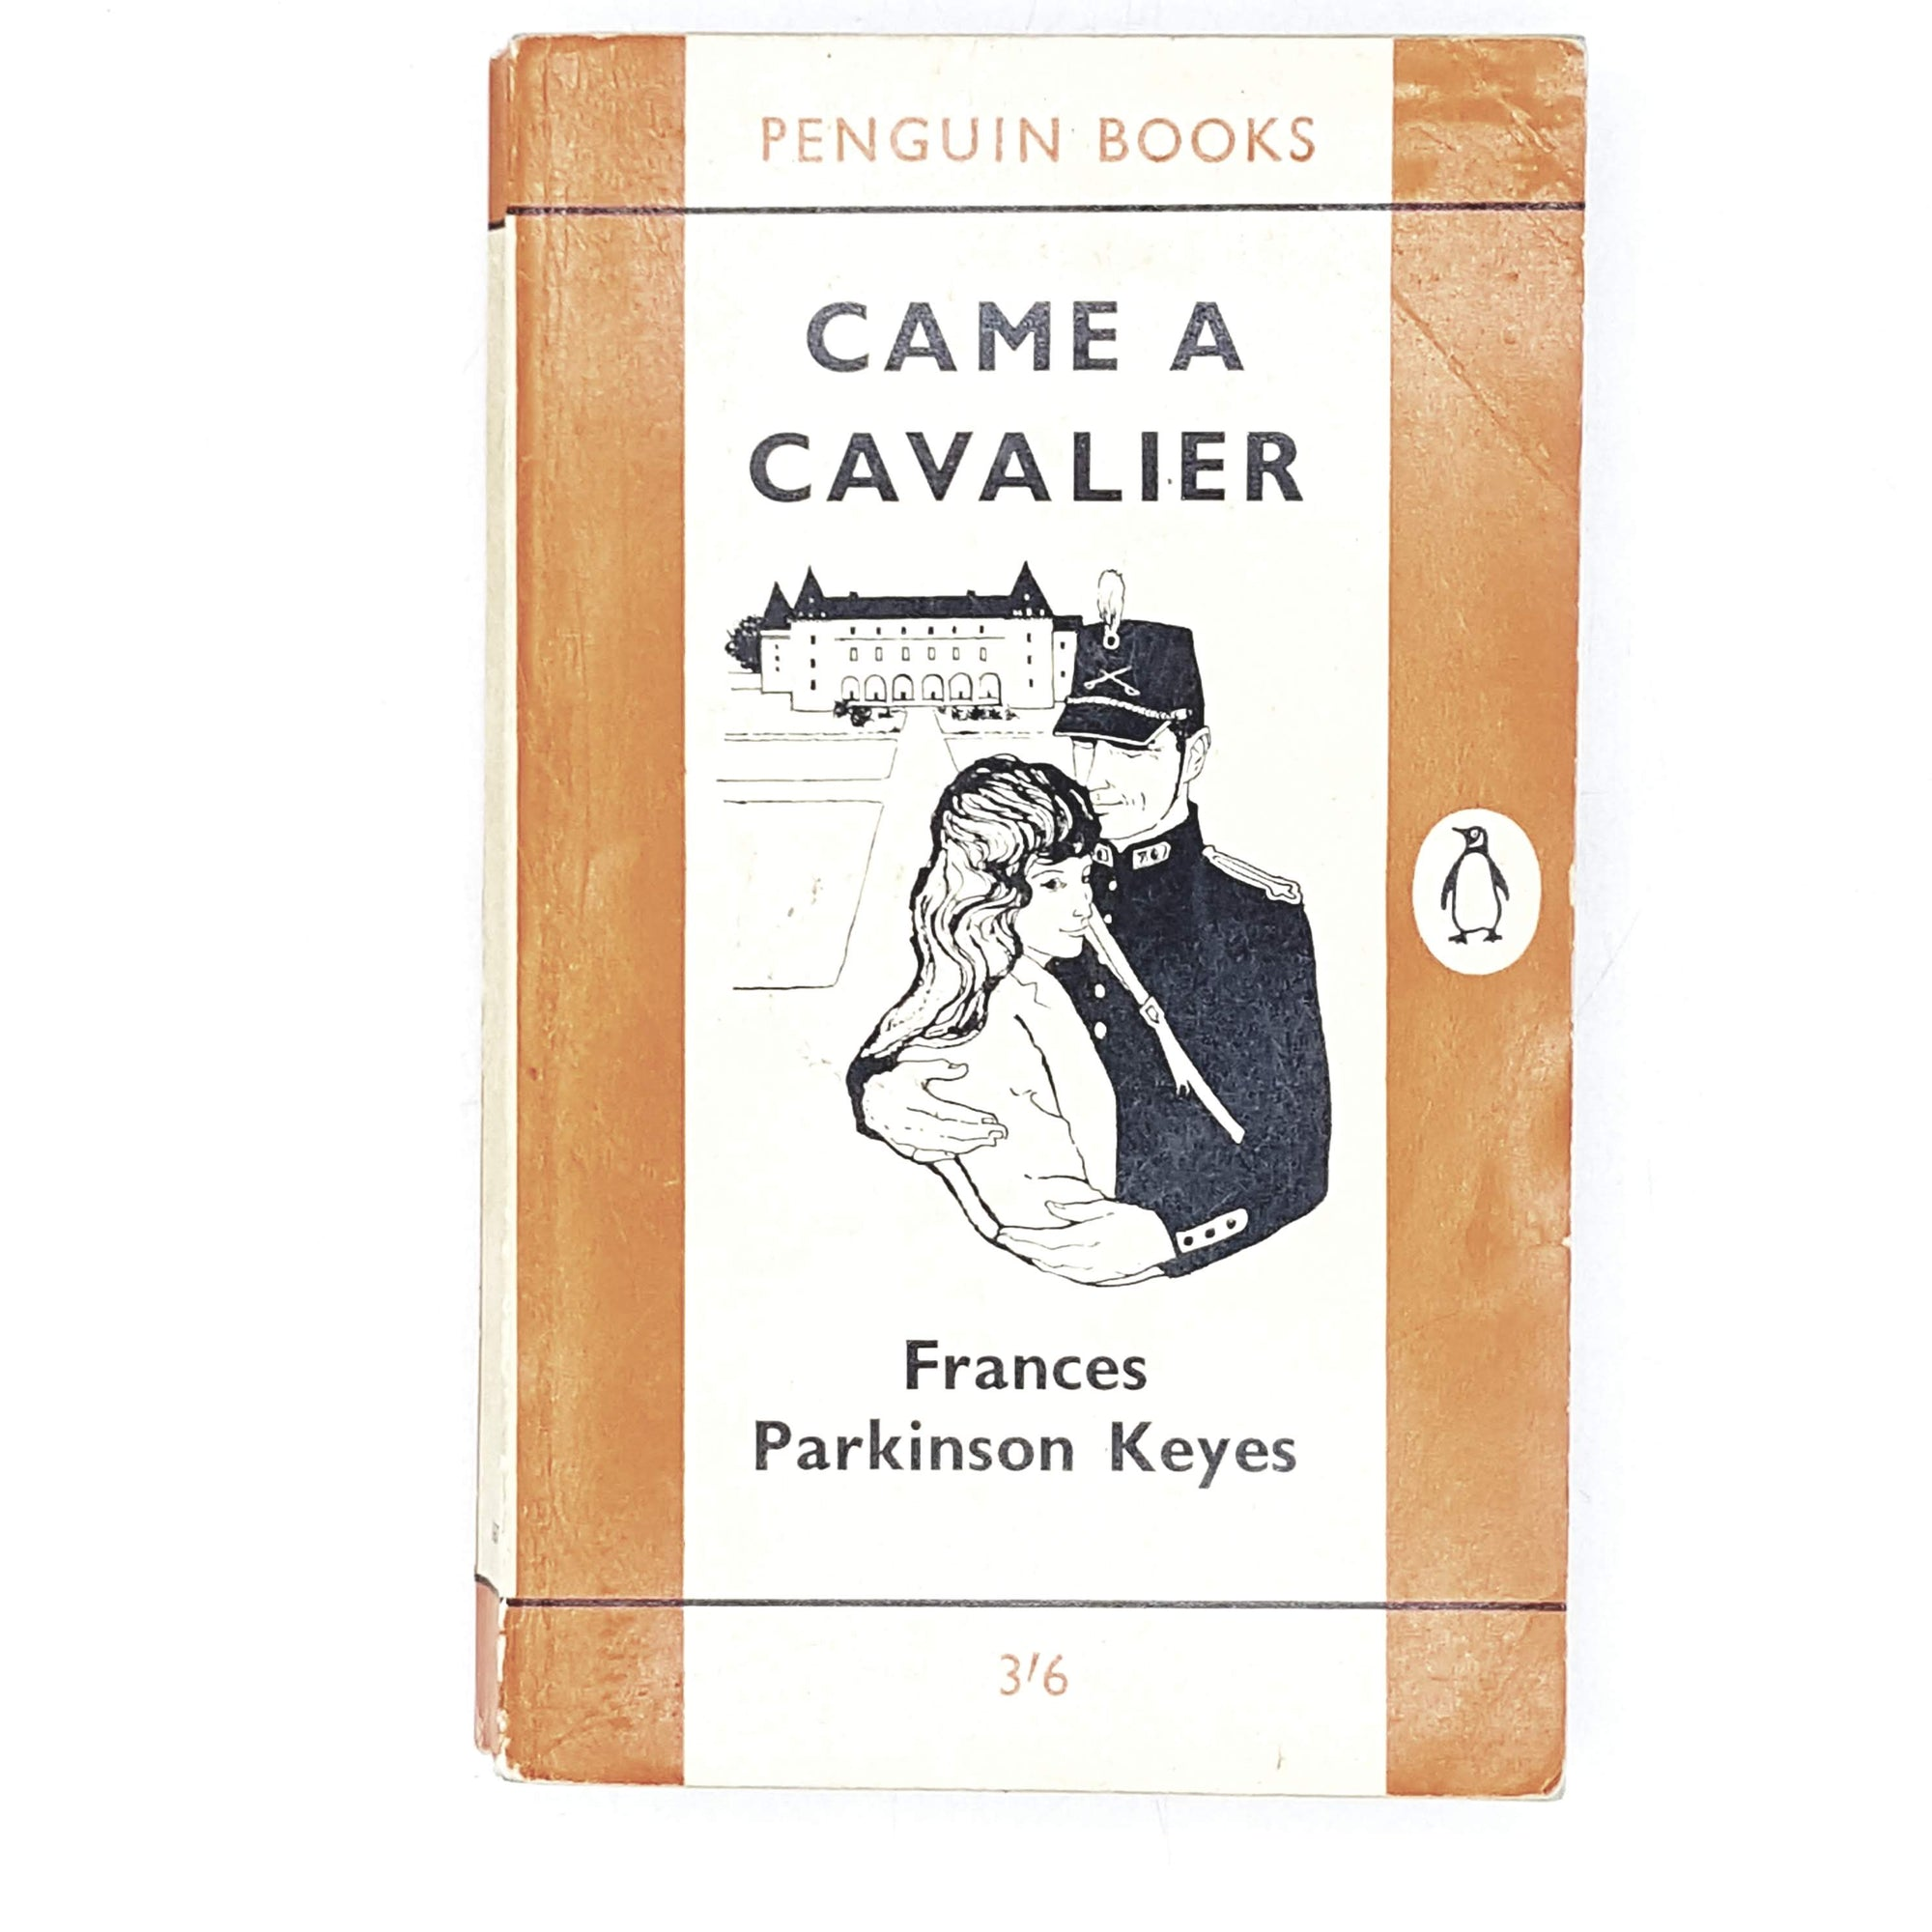 Vintage Penguin Came a Cavalier by Frances Parkinson Keyes 1960